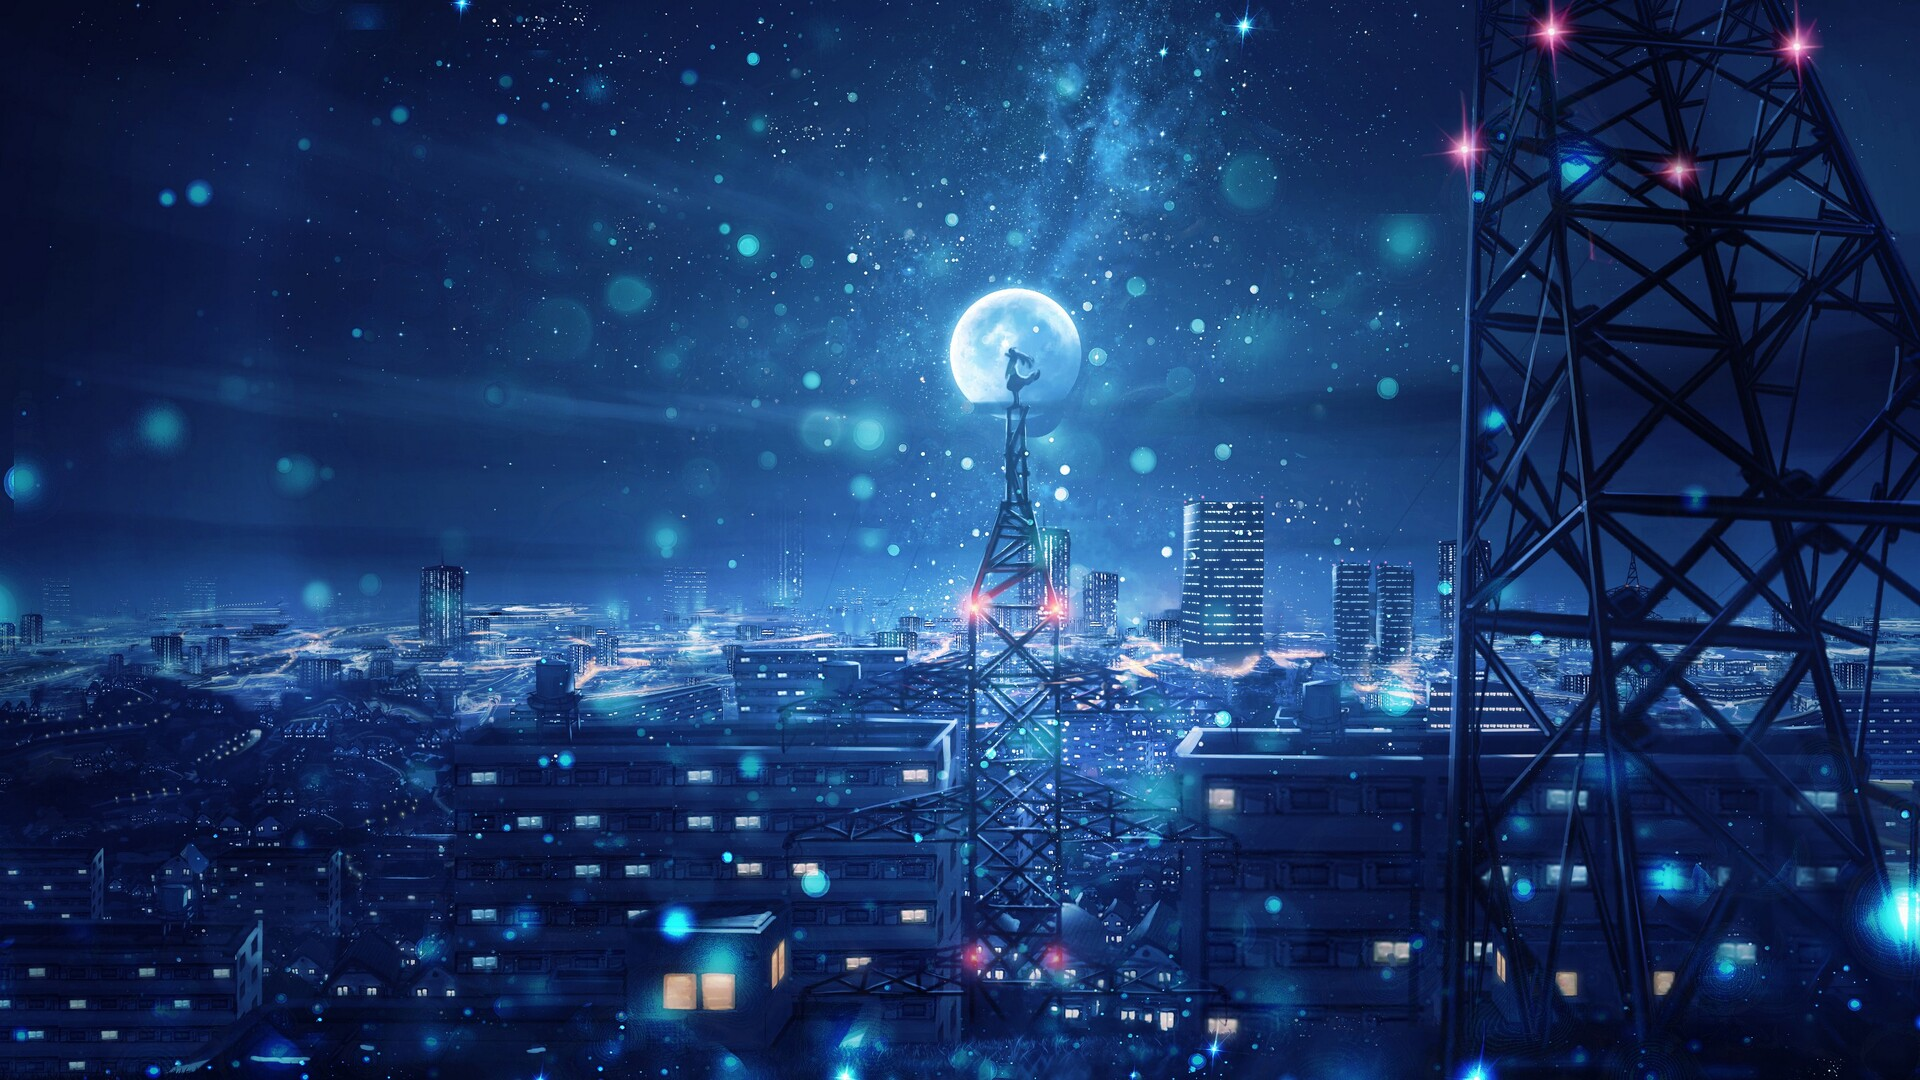 1920x1080 blue night big moon anime scenery 4k laptop full - Anime backgrounds hd 1920x1080 ...